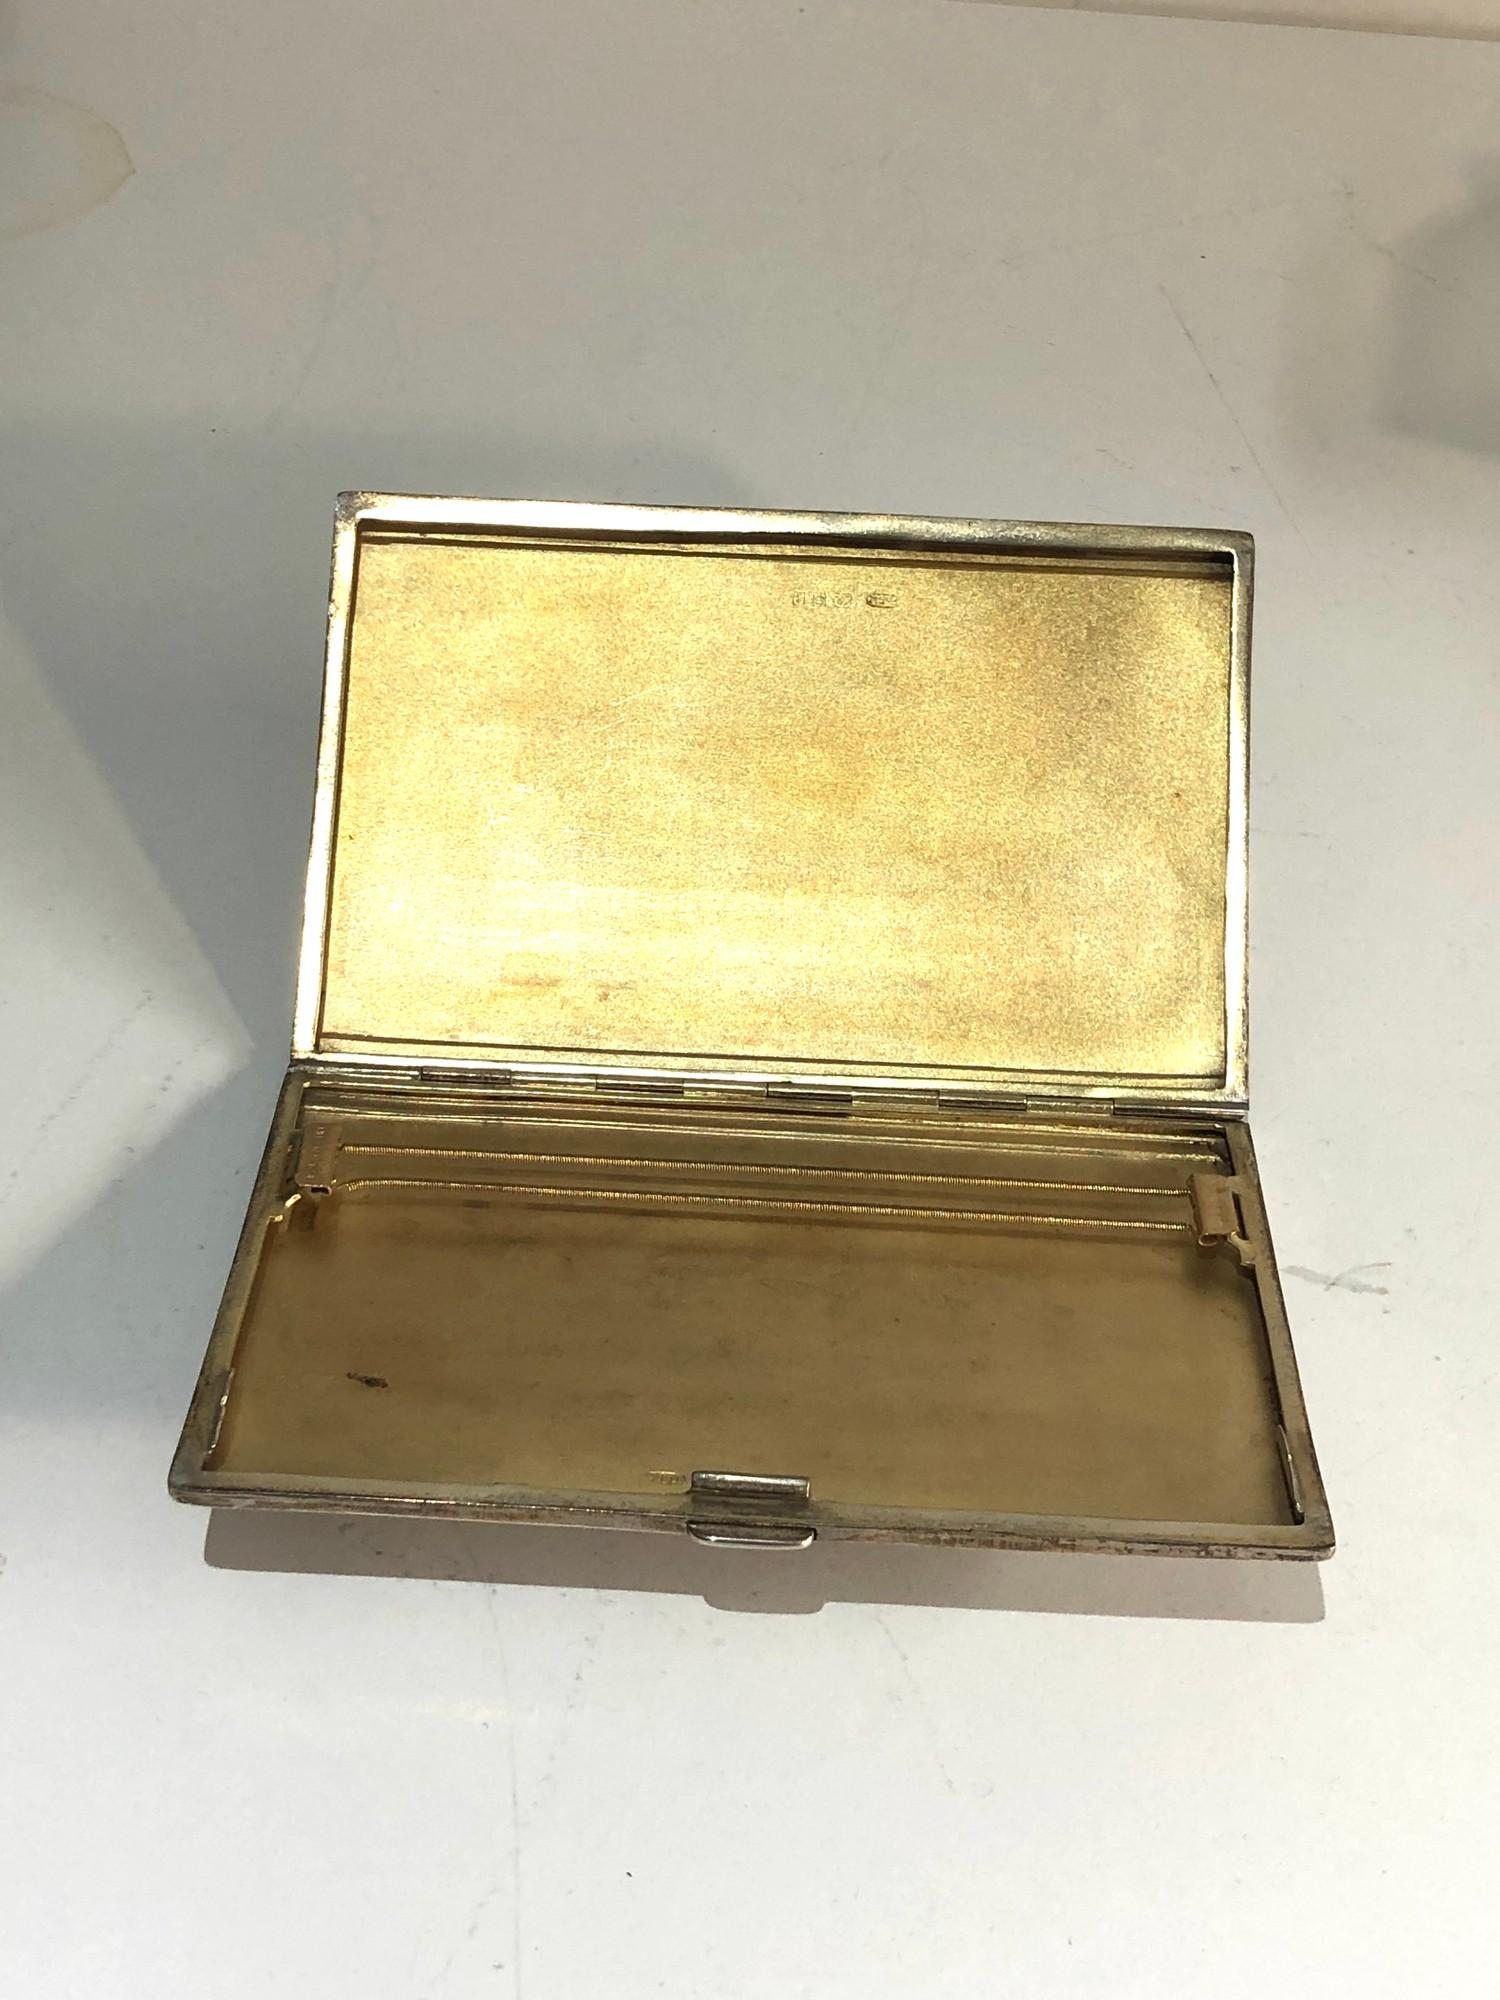 Engine turned silver cigarette case weight 150g - Image 3 of 3